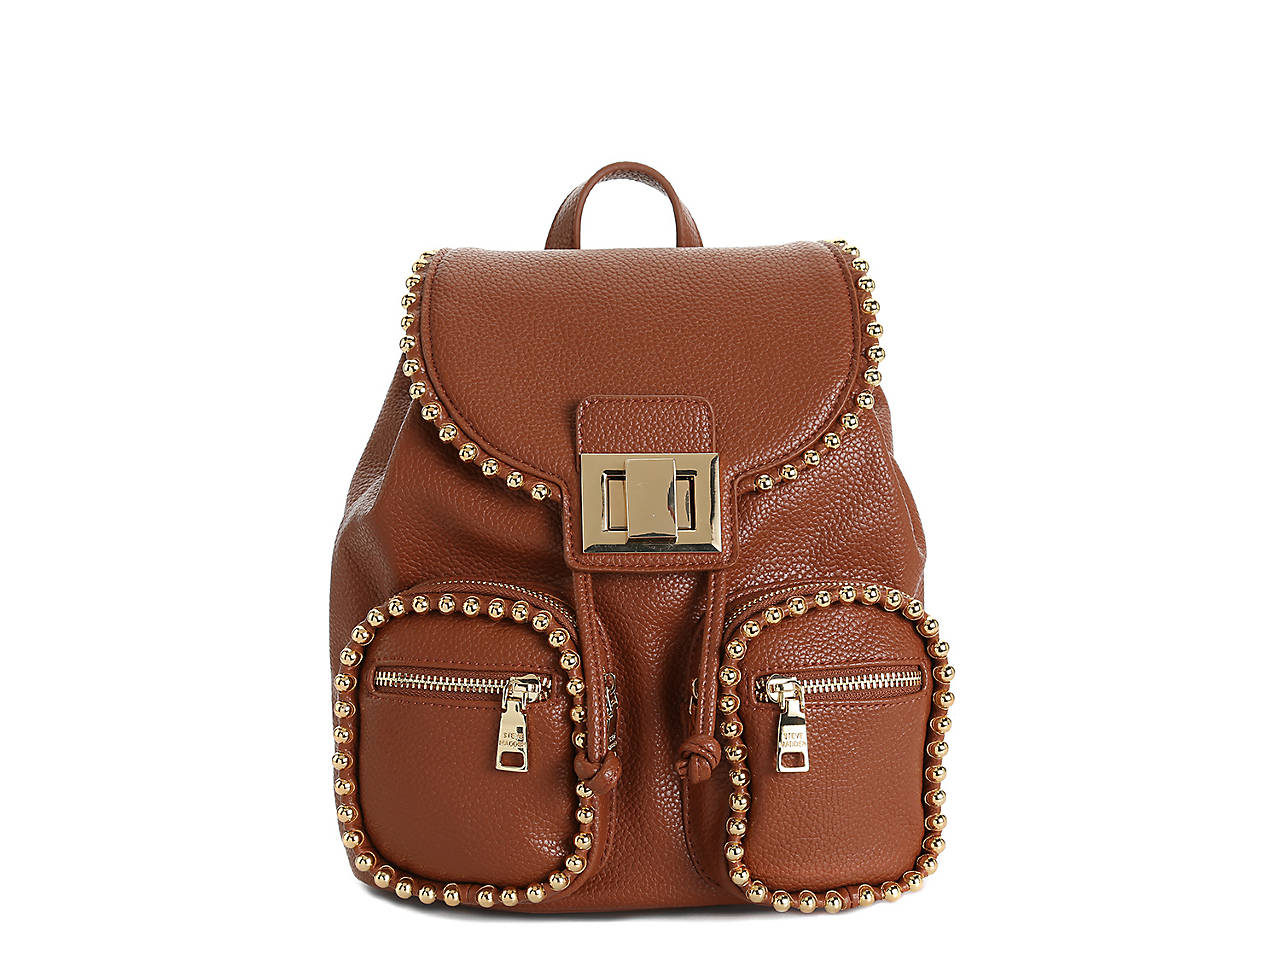 2b7cbdda10 Steve Madden Bjersey Backpack Women's Handbags & Accessories | DSW